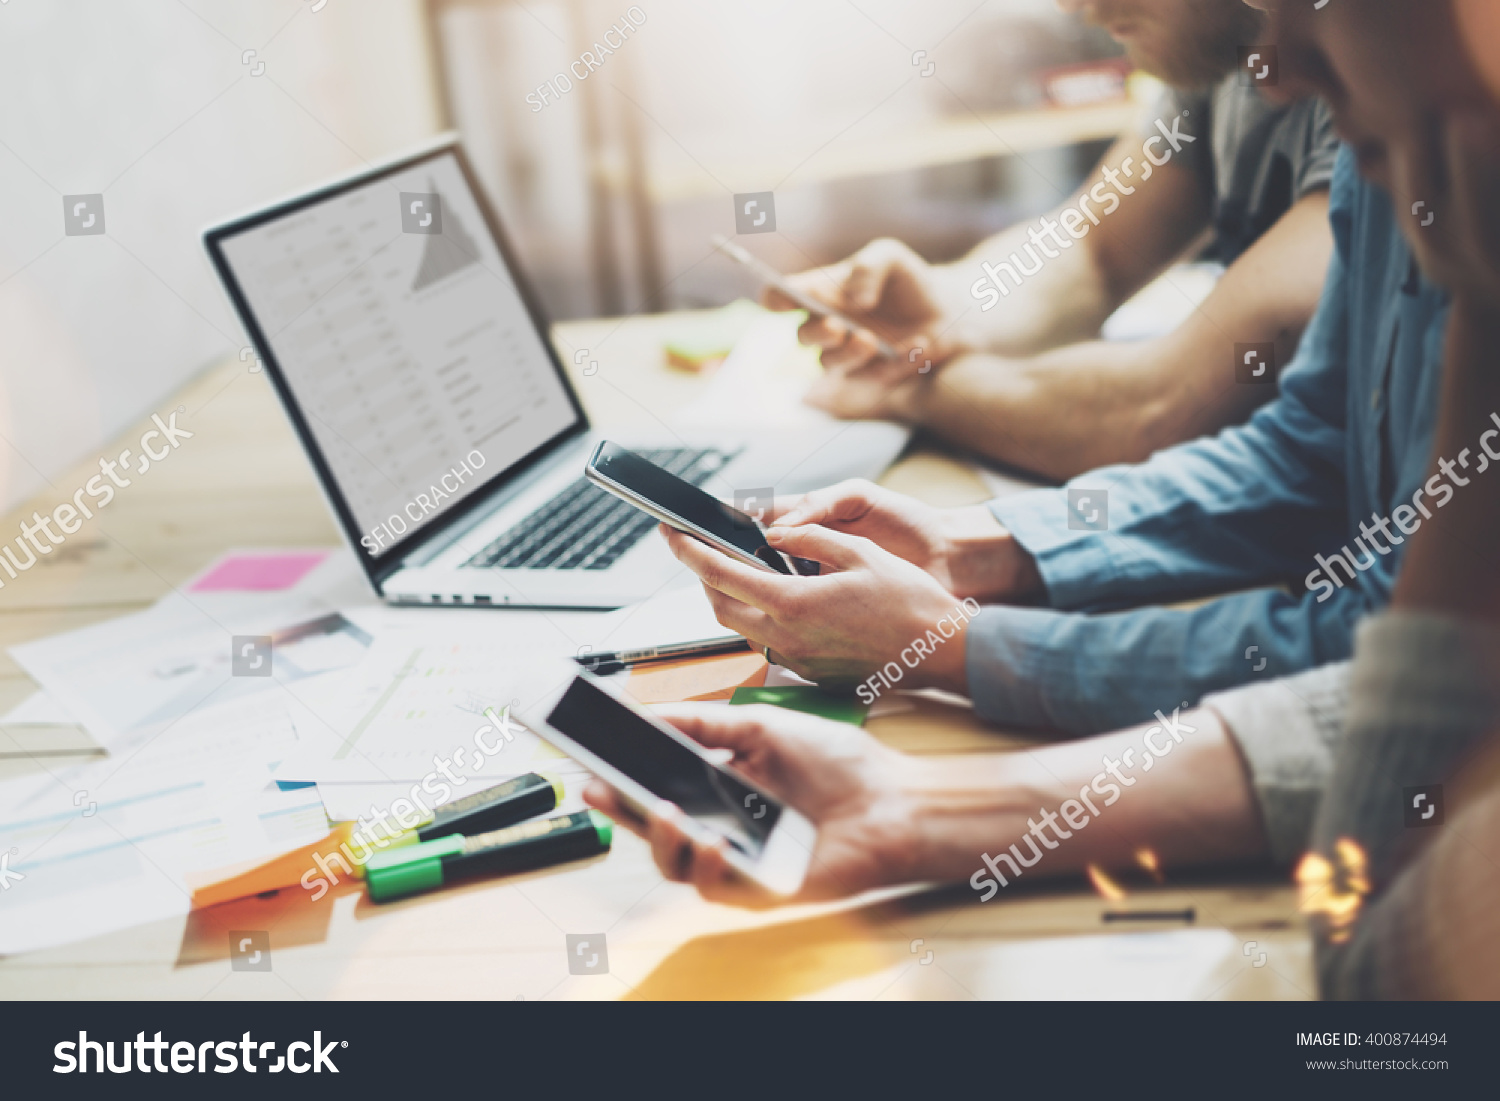 Digital world. Photo young business managers crew working with new startup project.Notebook on wood table. Using modern smartphones, typing message, analyze plans screen. Horizontal, film effect. #400874494